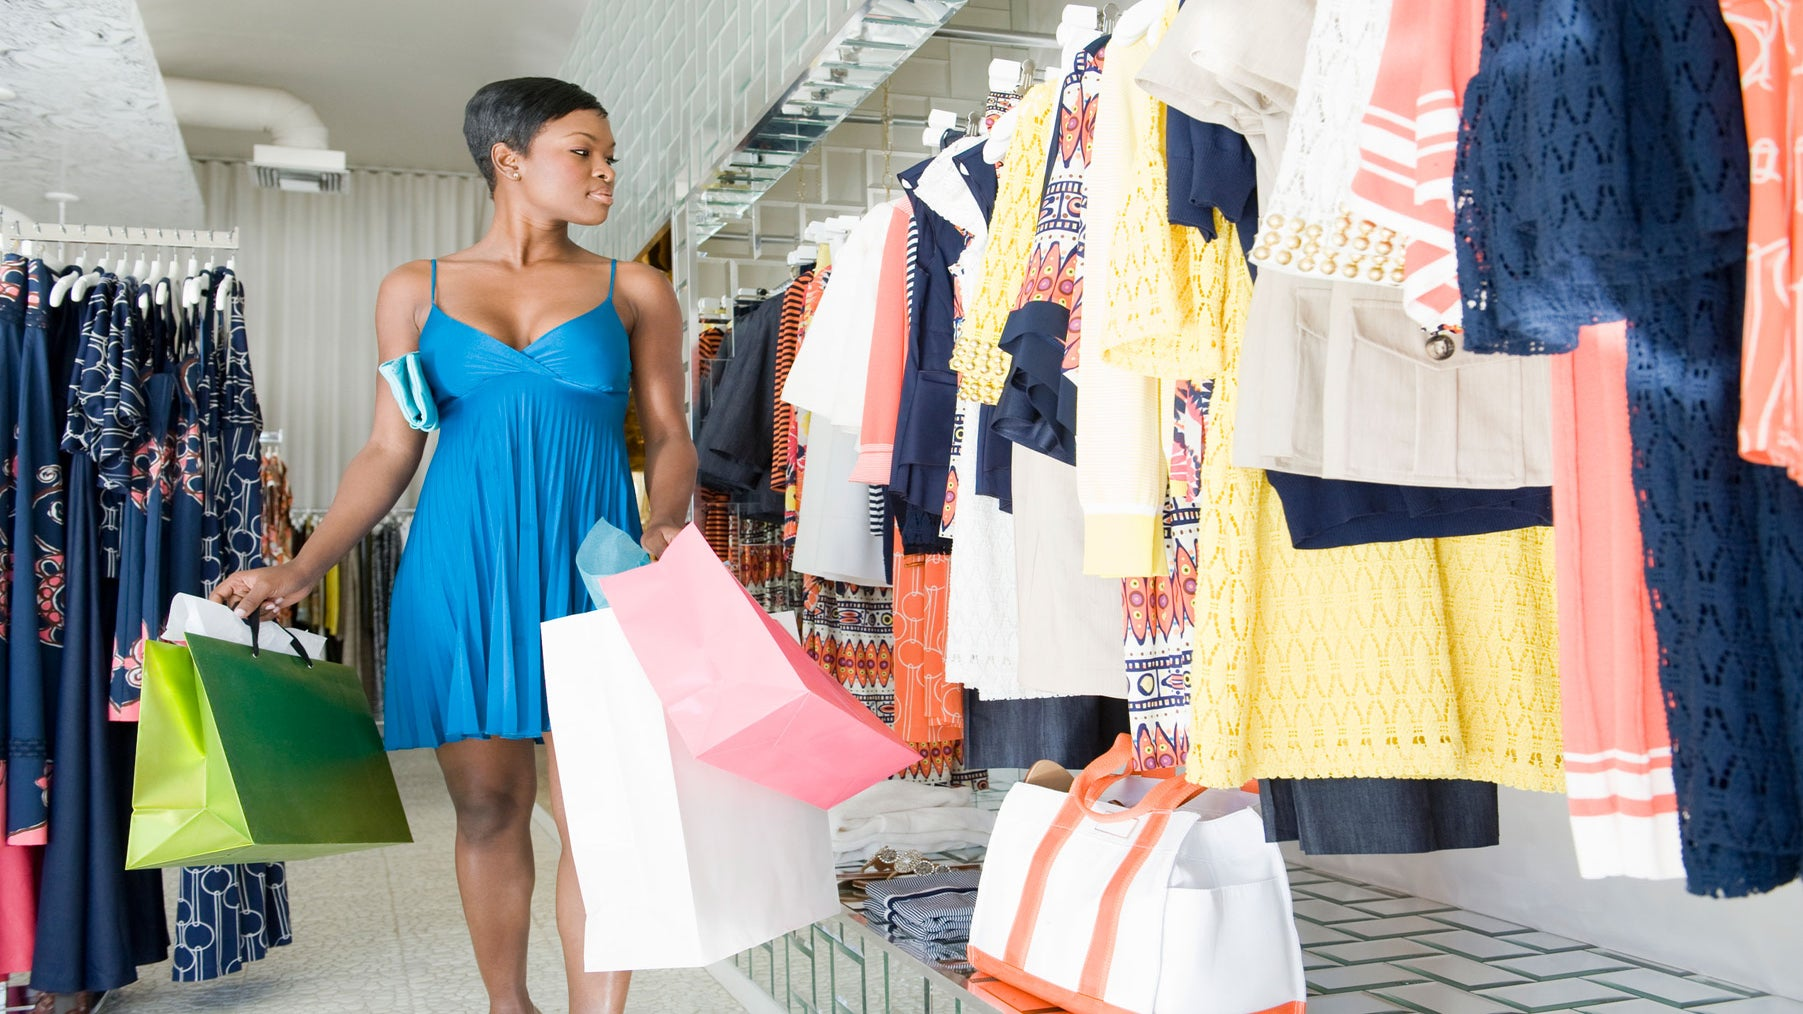 Shopping While Black: What to Do If It Happens to You